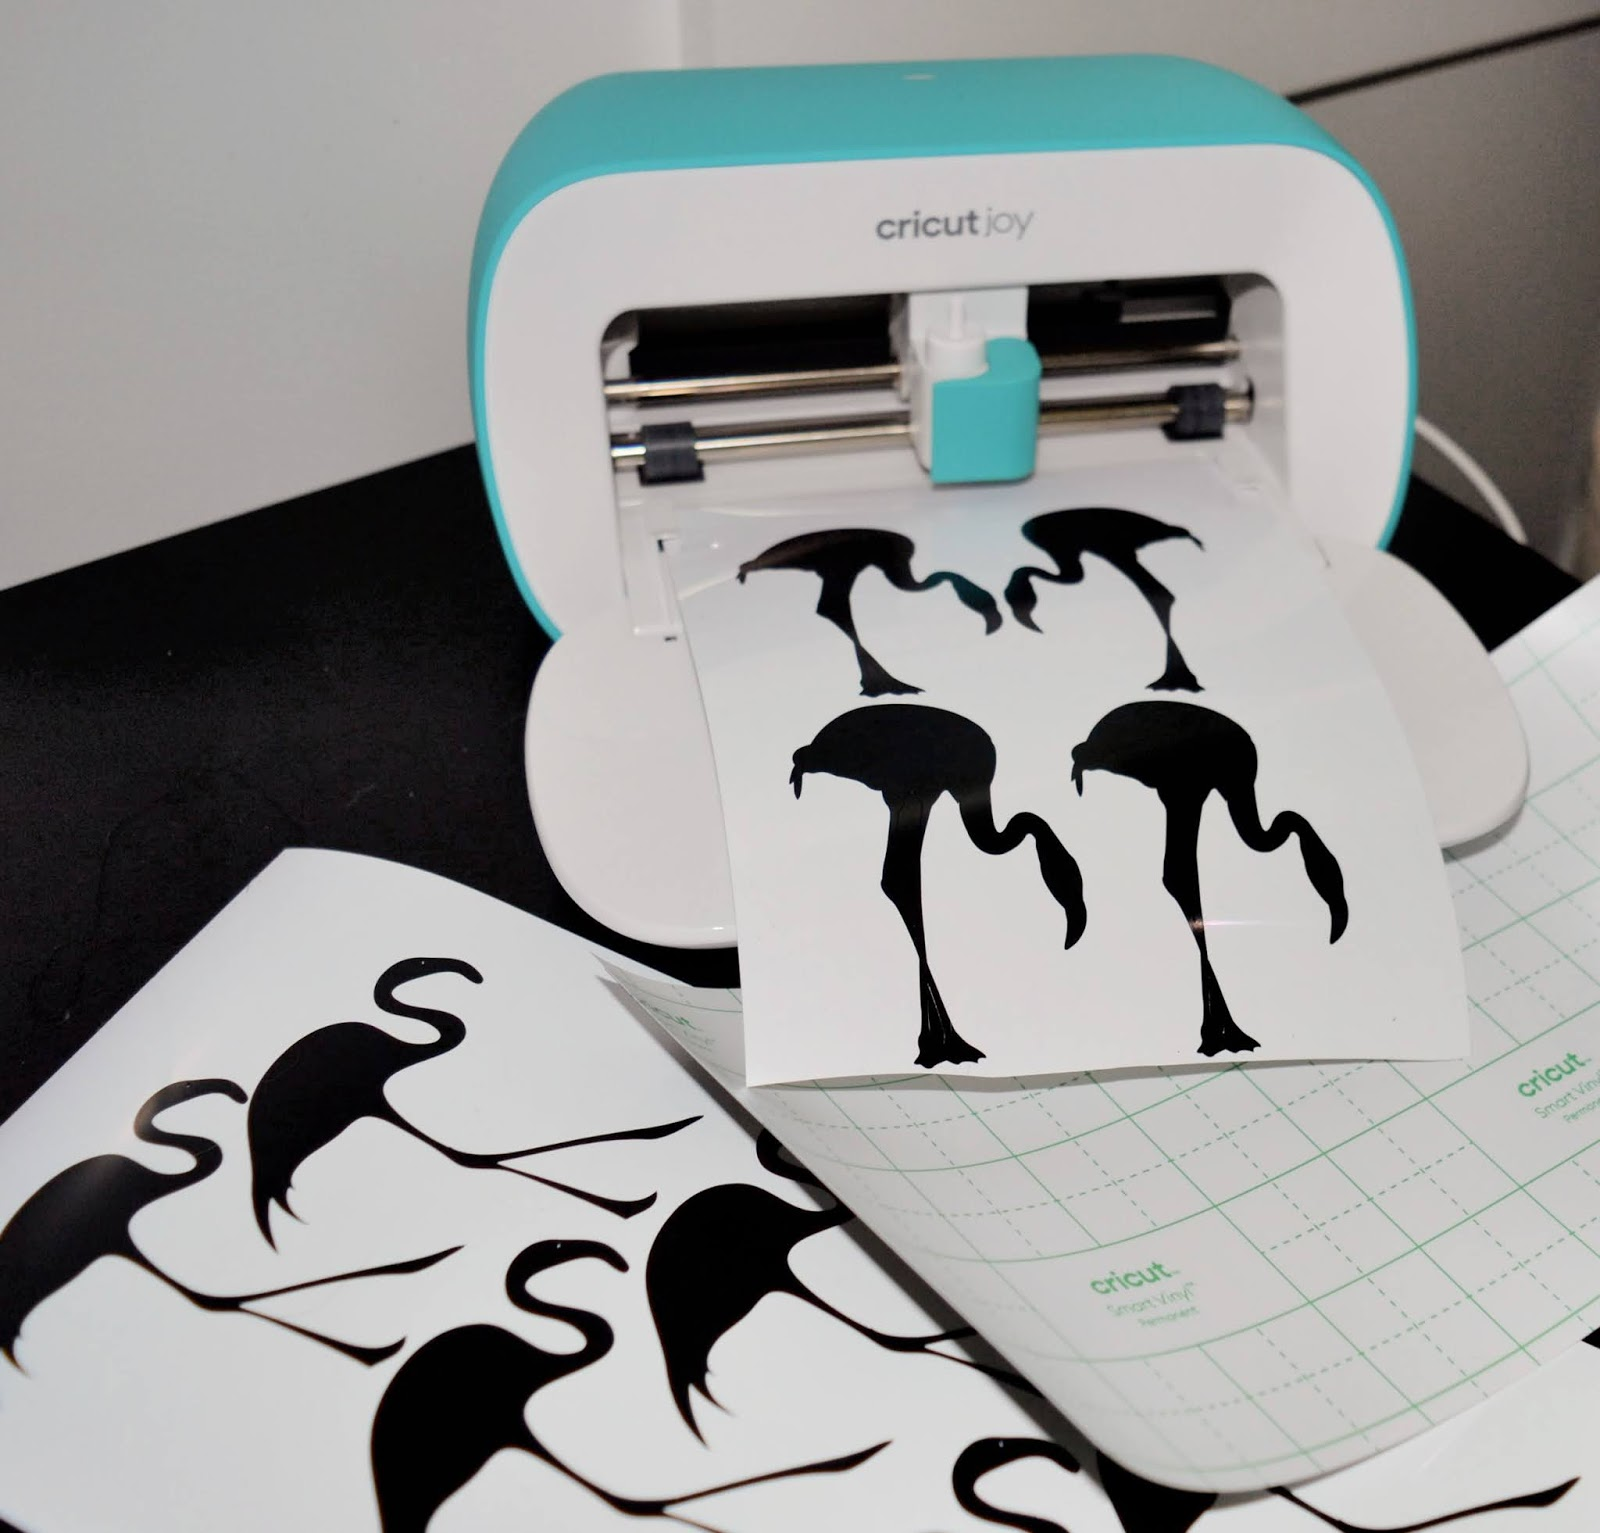 cricut joy project ideas